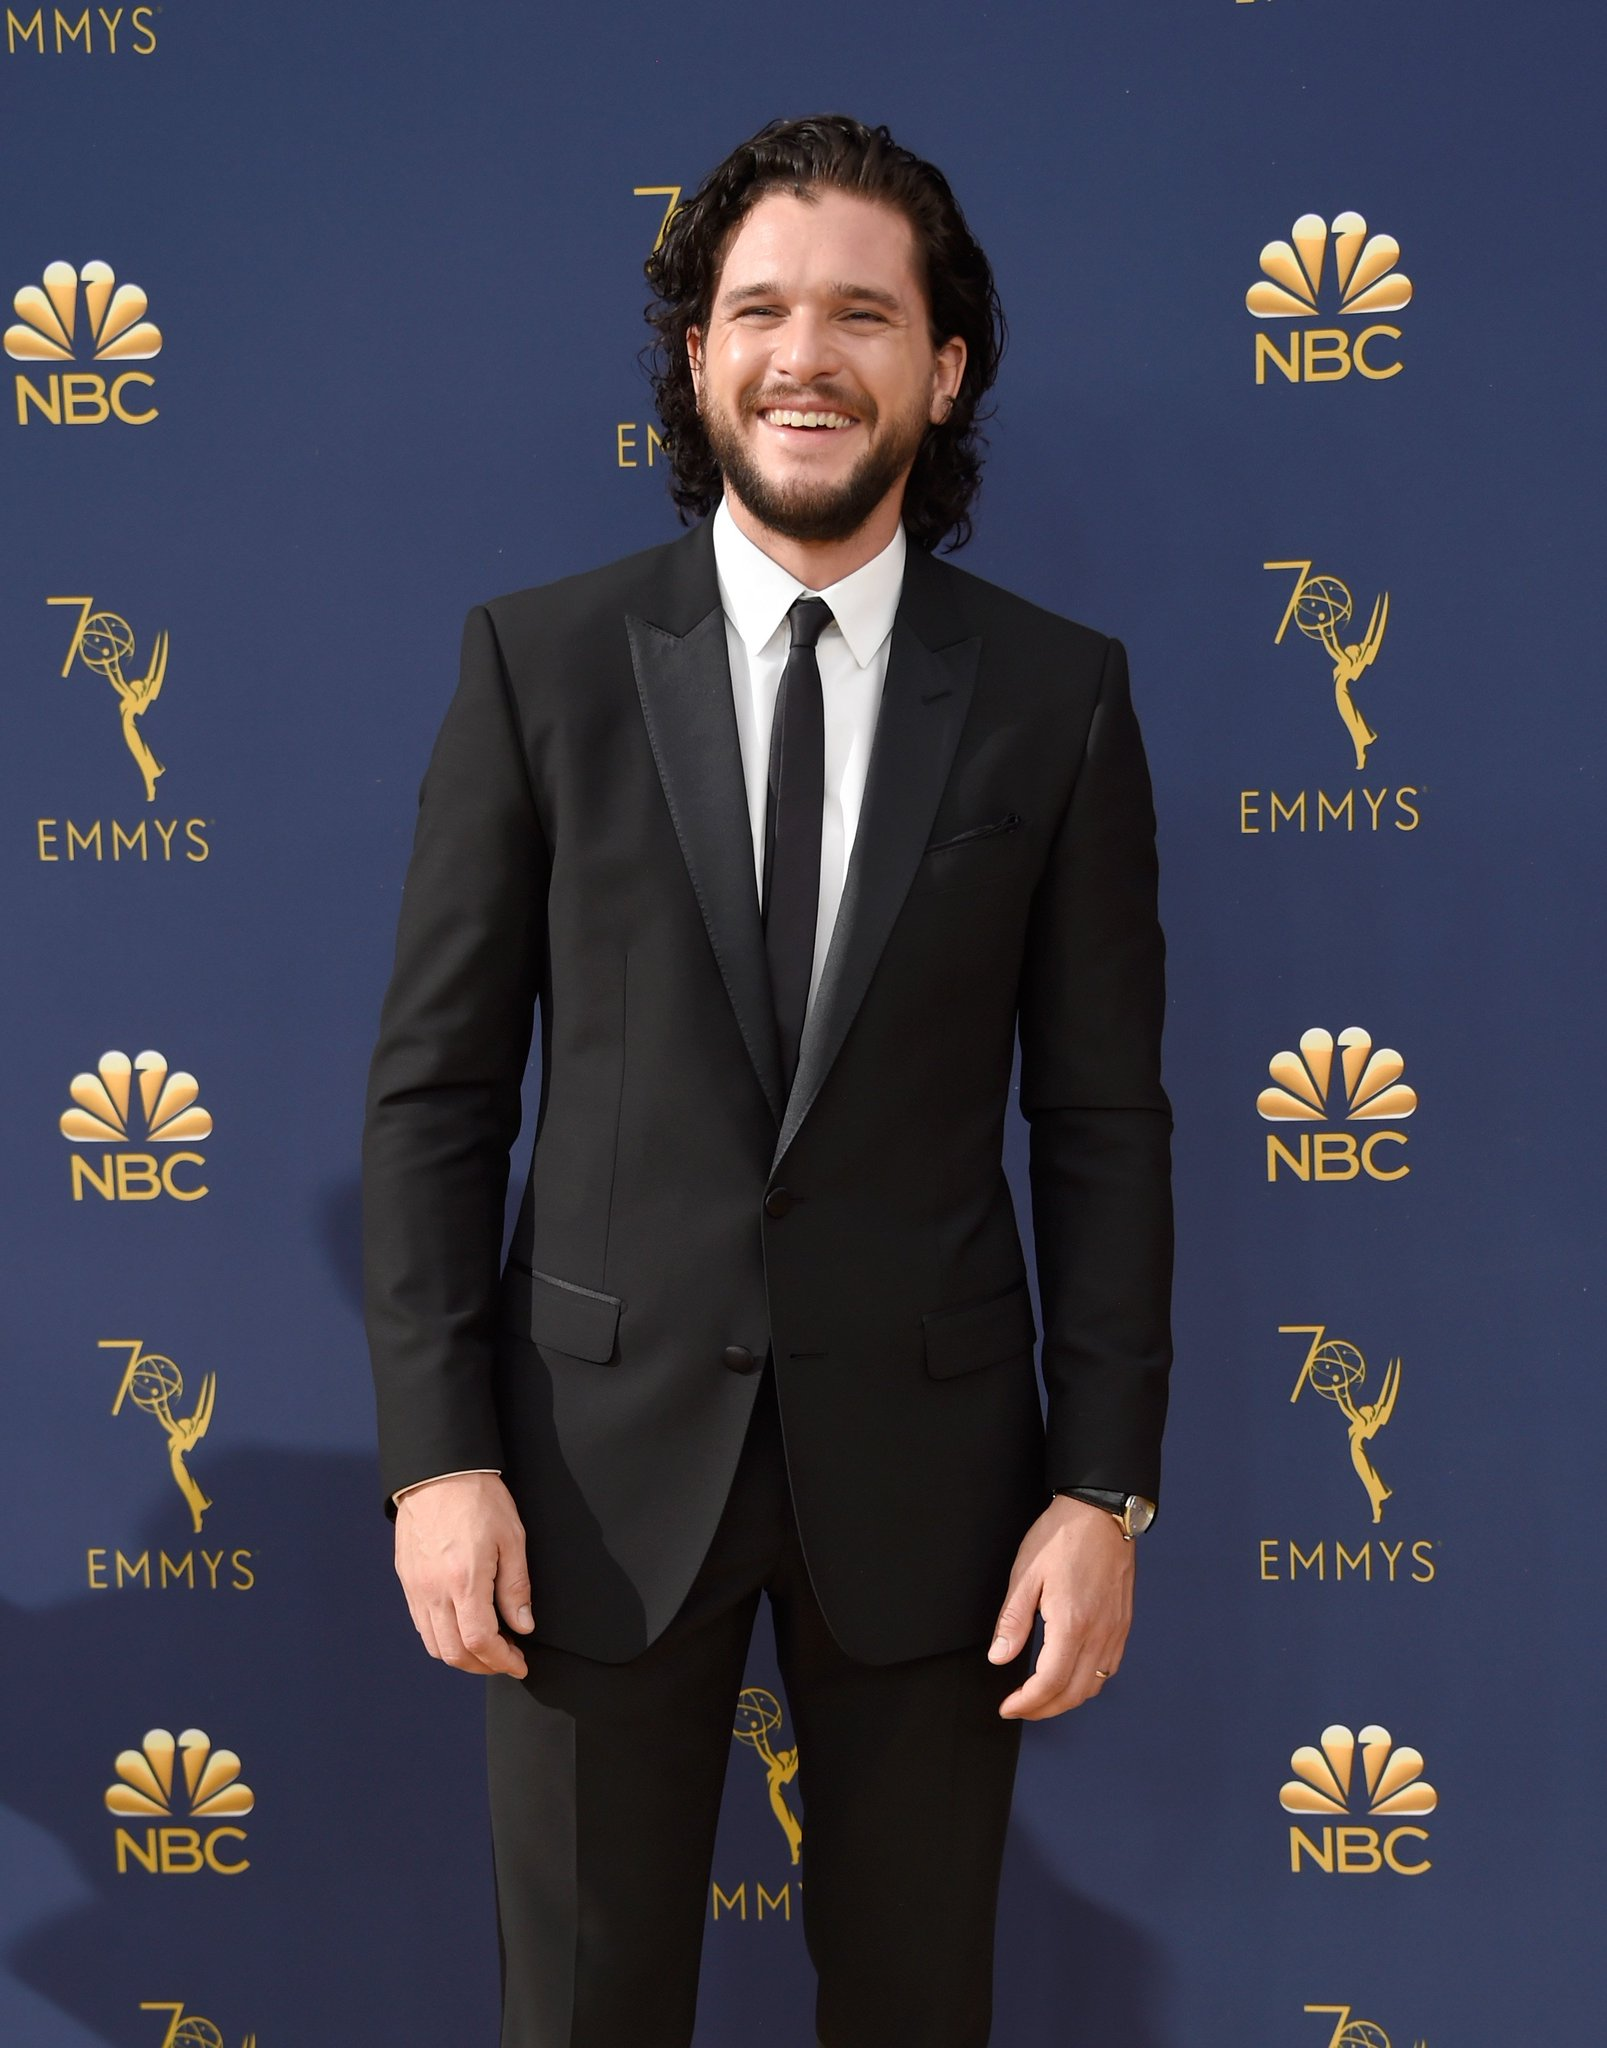 #GameofThrones' Kit Harington is all smiles on the #Emmys red carpet https://t.co/5F233sPehj https://t.co/2OIXR0MJHl